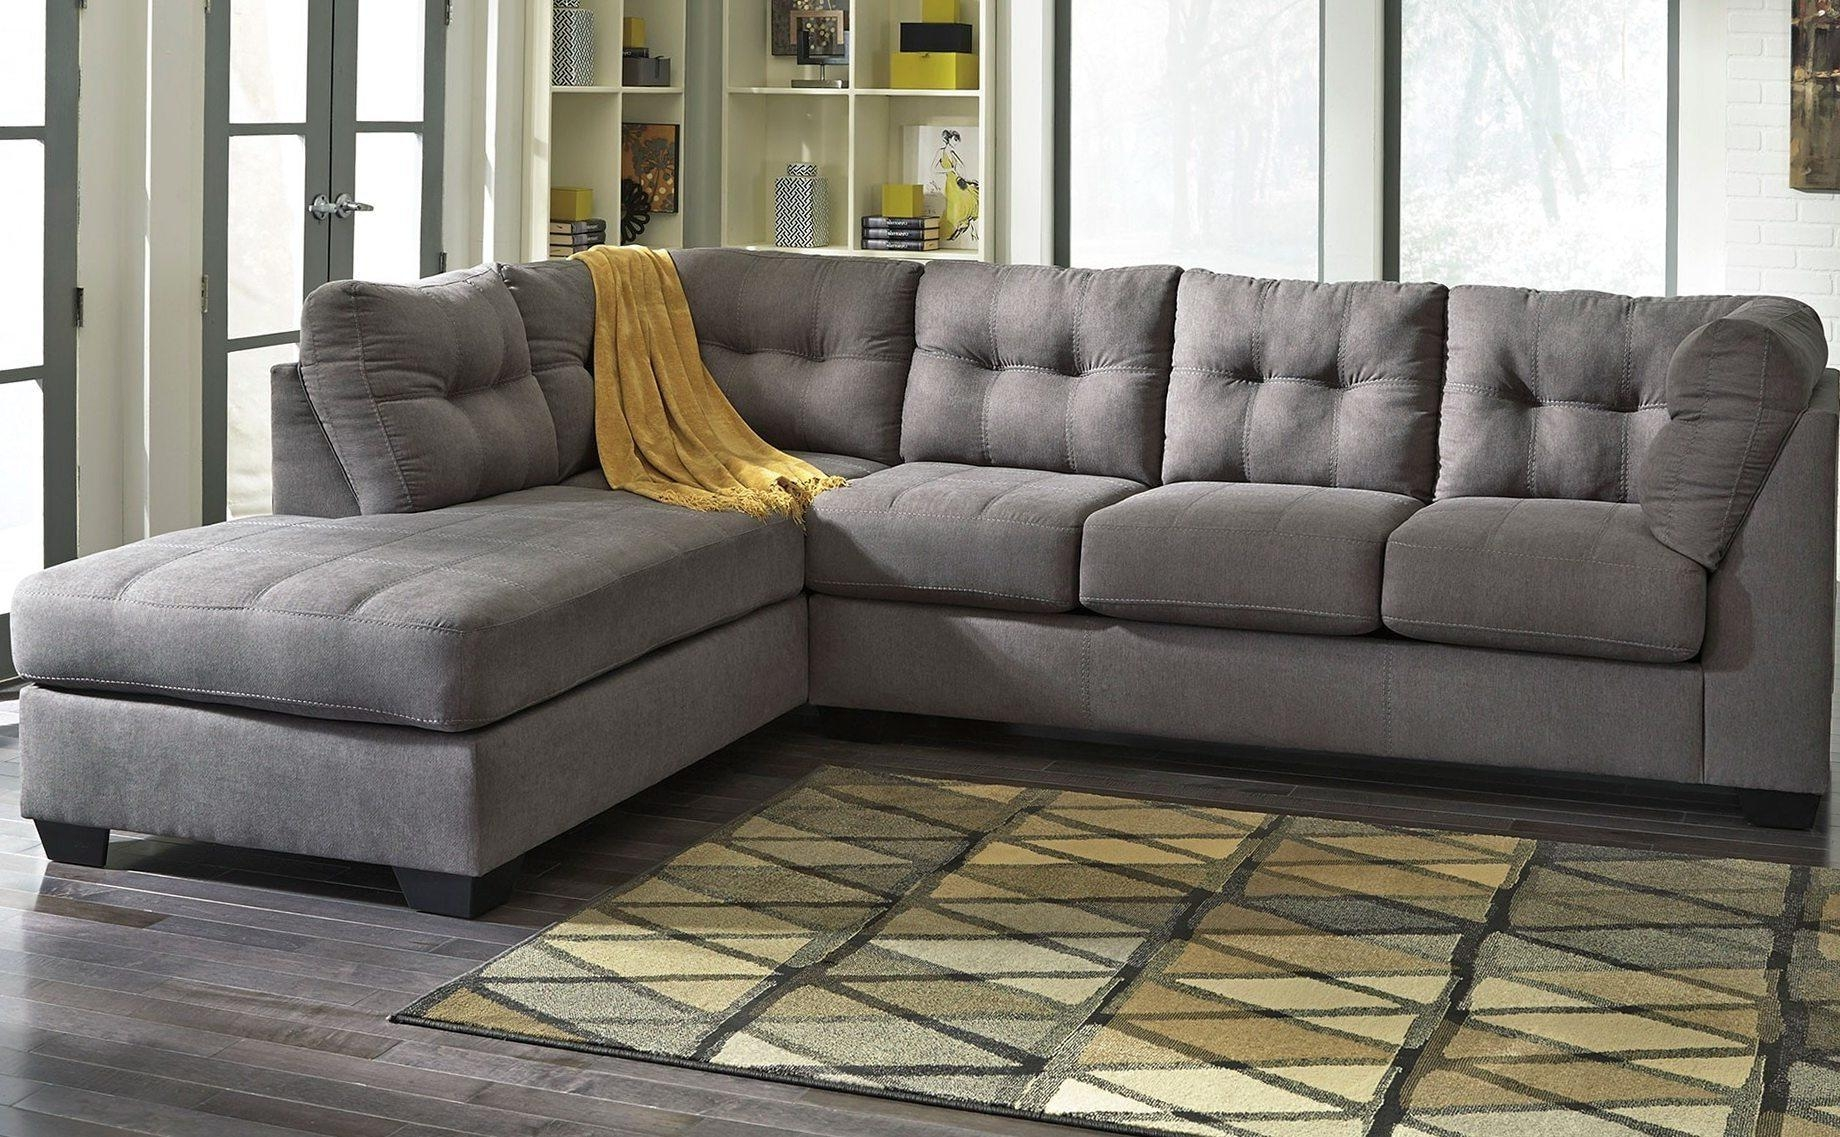 Sofas Center : Corey Gray Sectional Charcoal Couch With Chaise Two Pertaining To Charcoal Gray Sectional Sofas (Image 17 of 20)